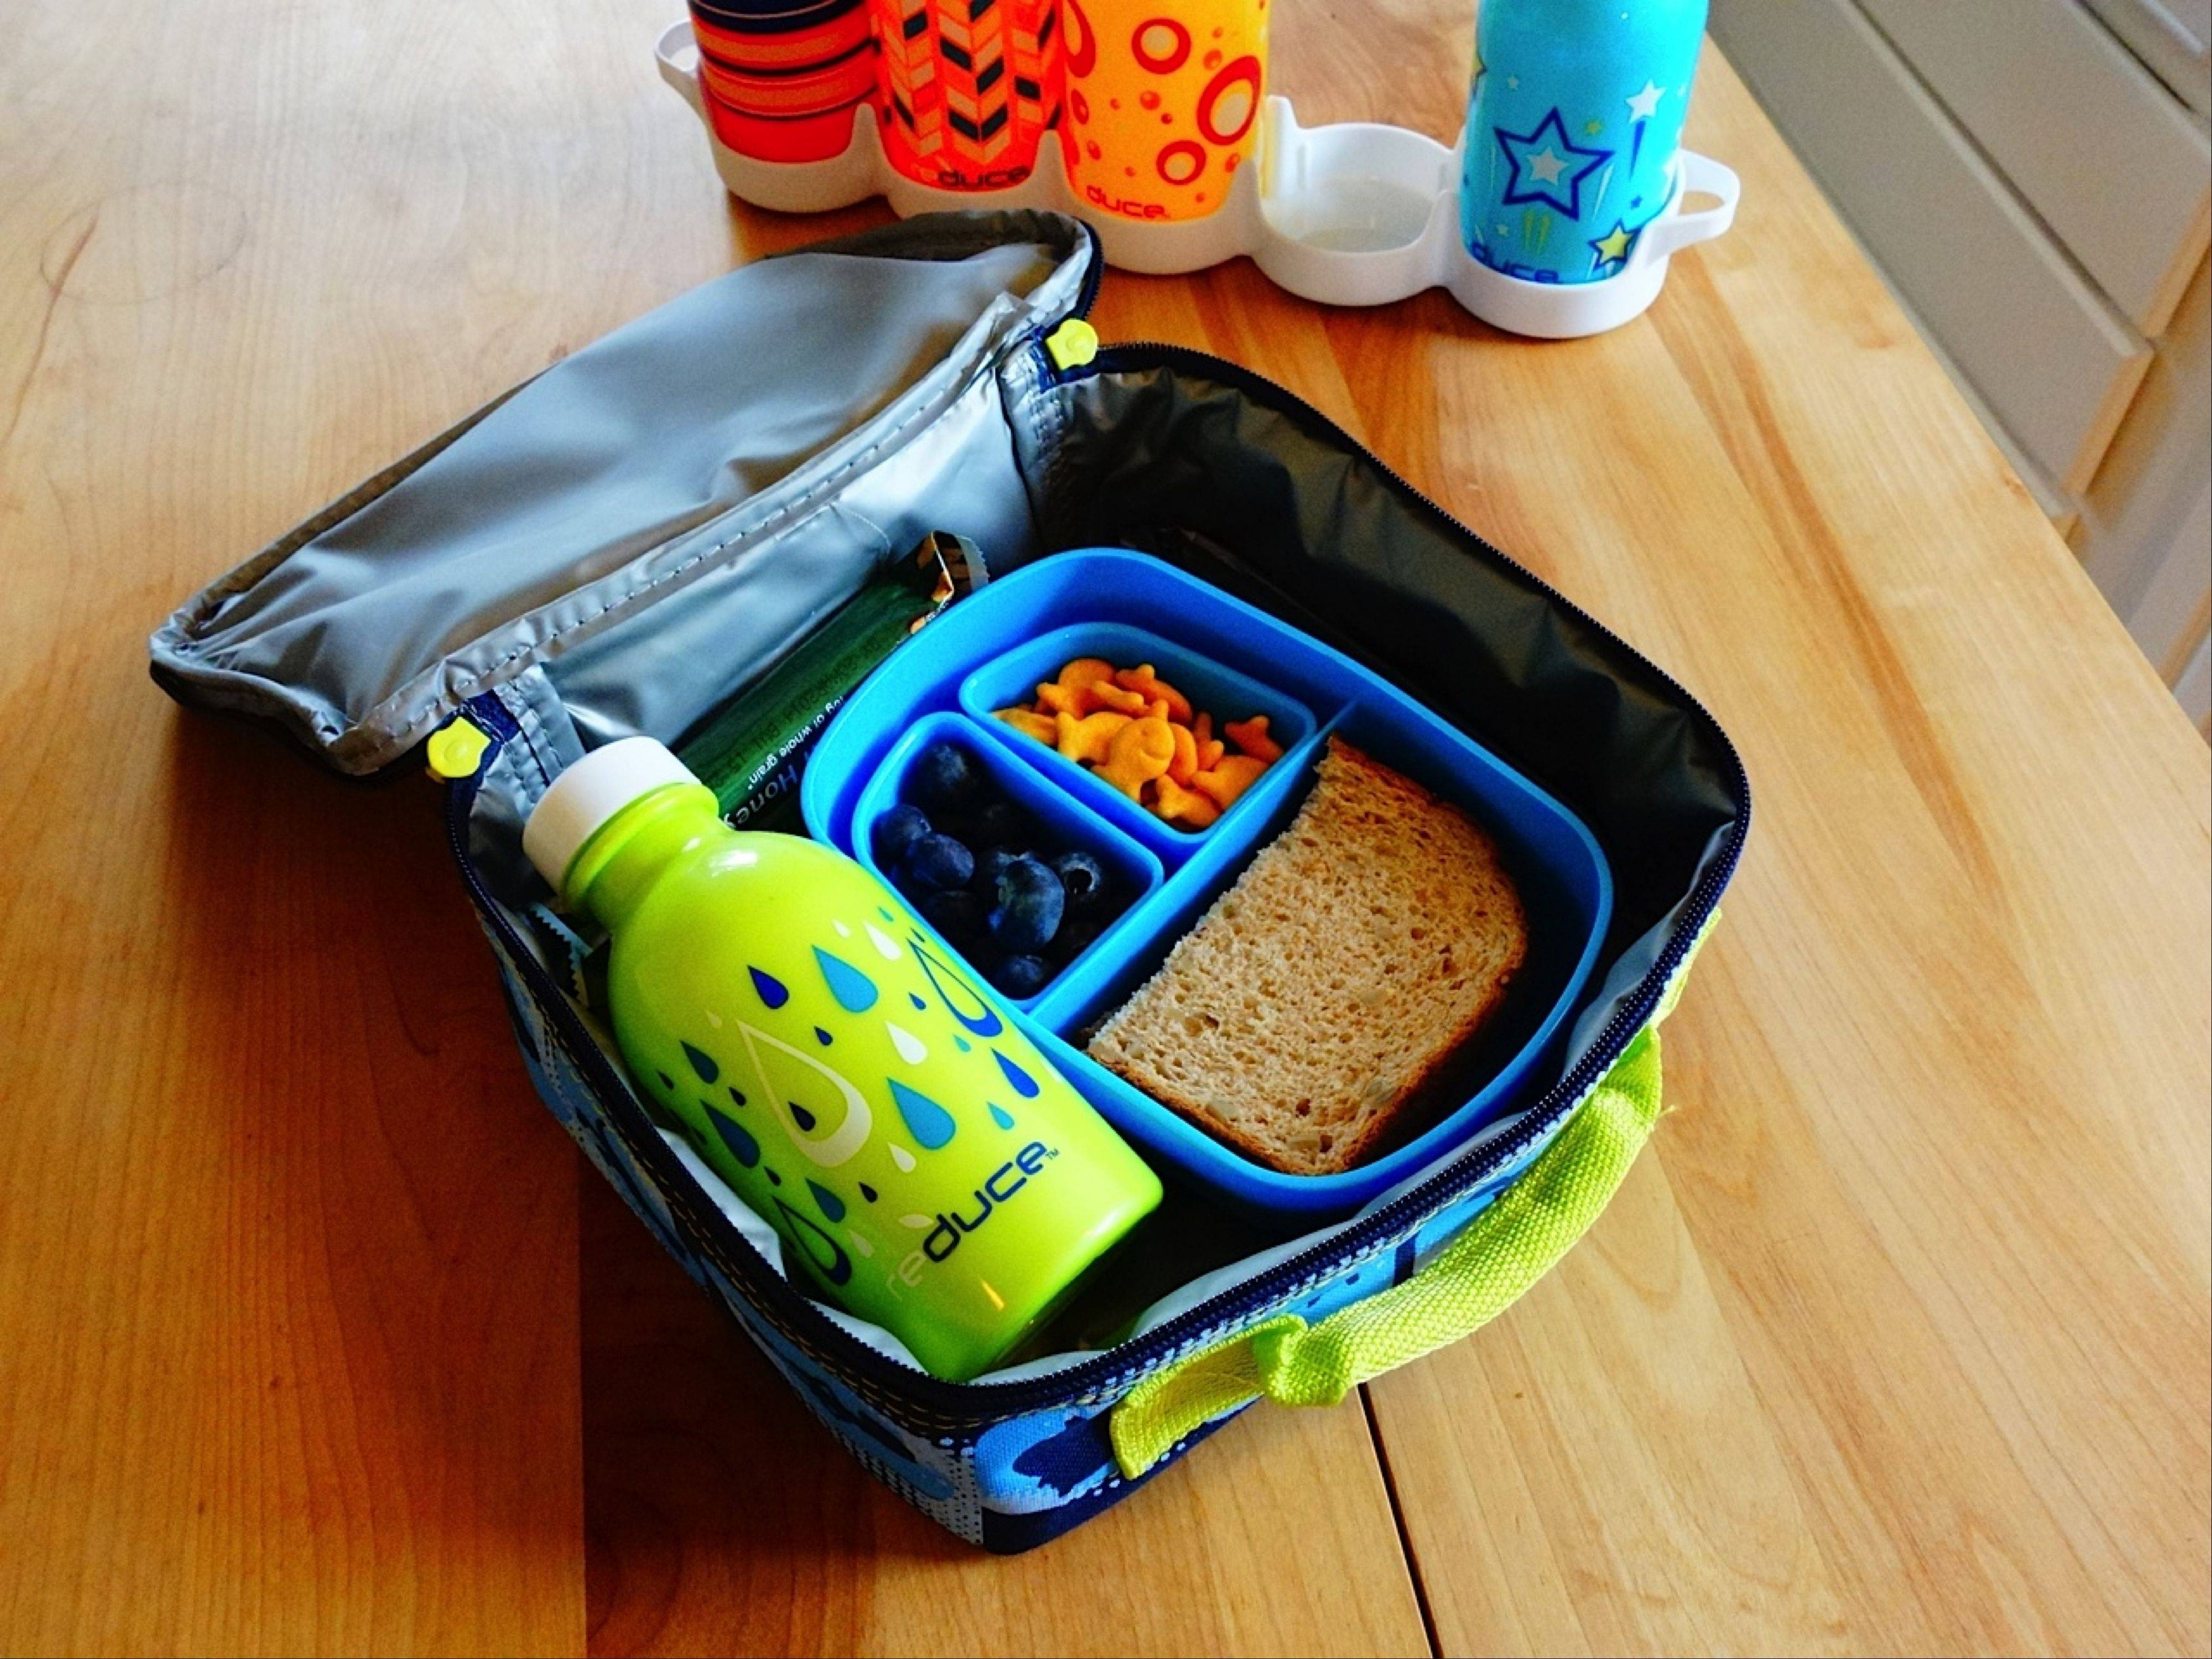 Reduce's 10-ounce reusable water bottles fit nicely into kids' lunchboxes.